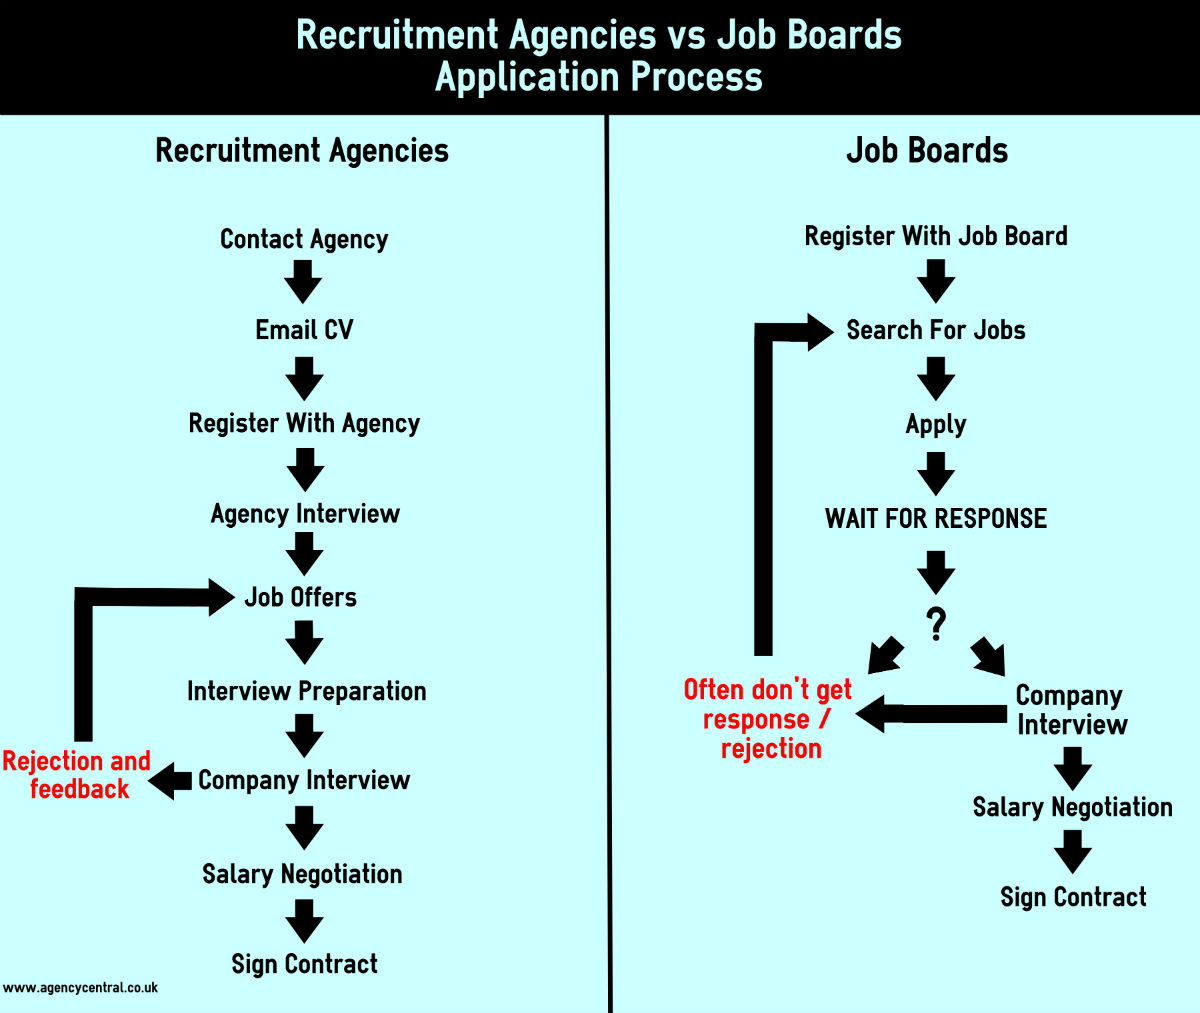 how people a job when candidates use an agency or apply for a role directly through an employer there s usually a definite response whether good or bad